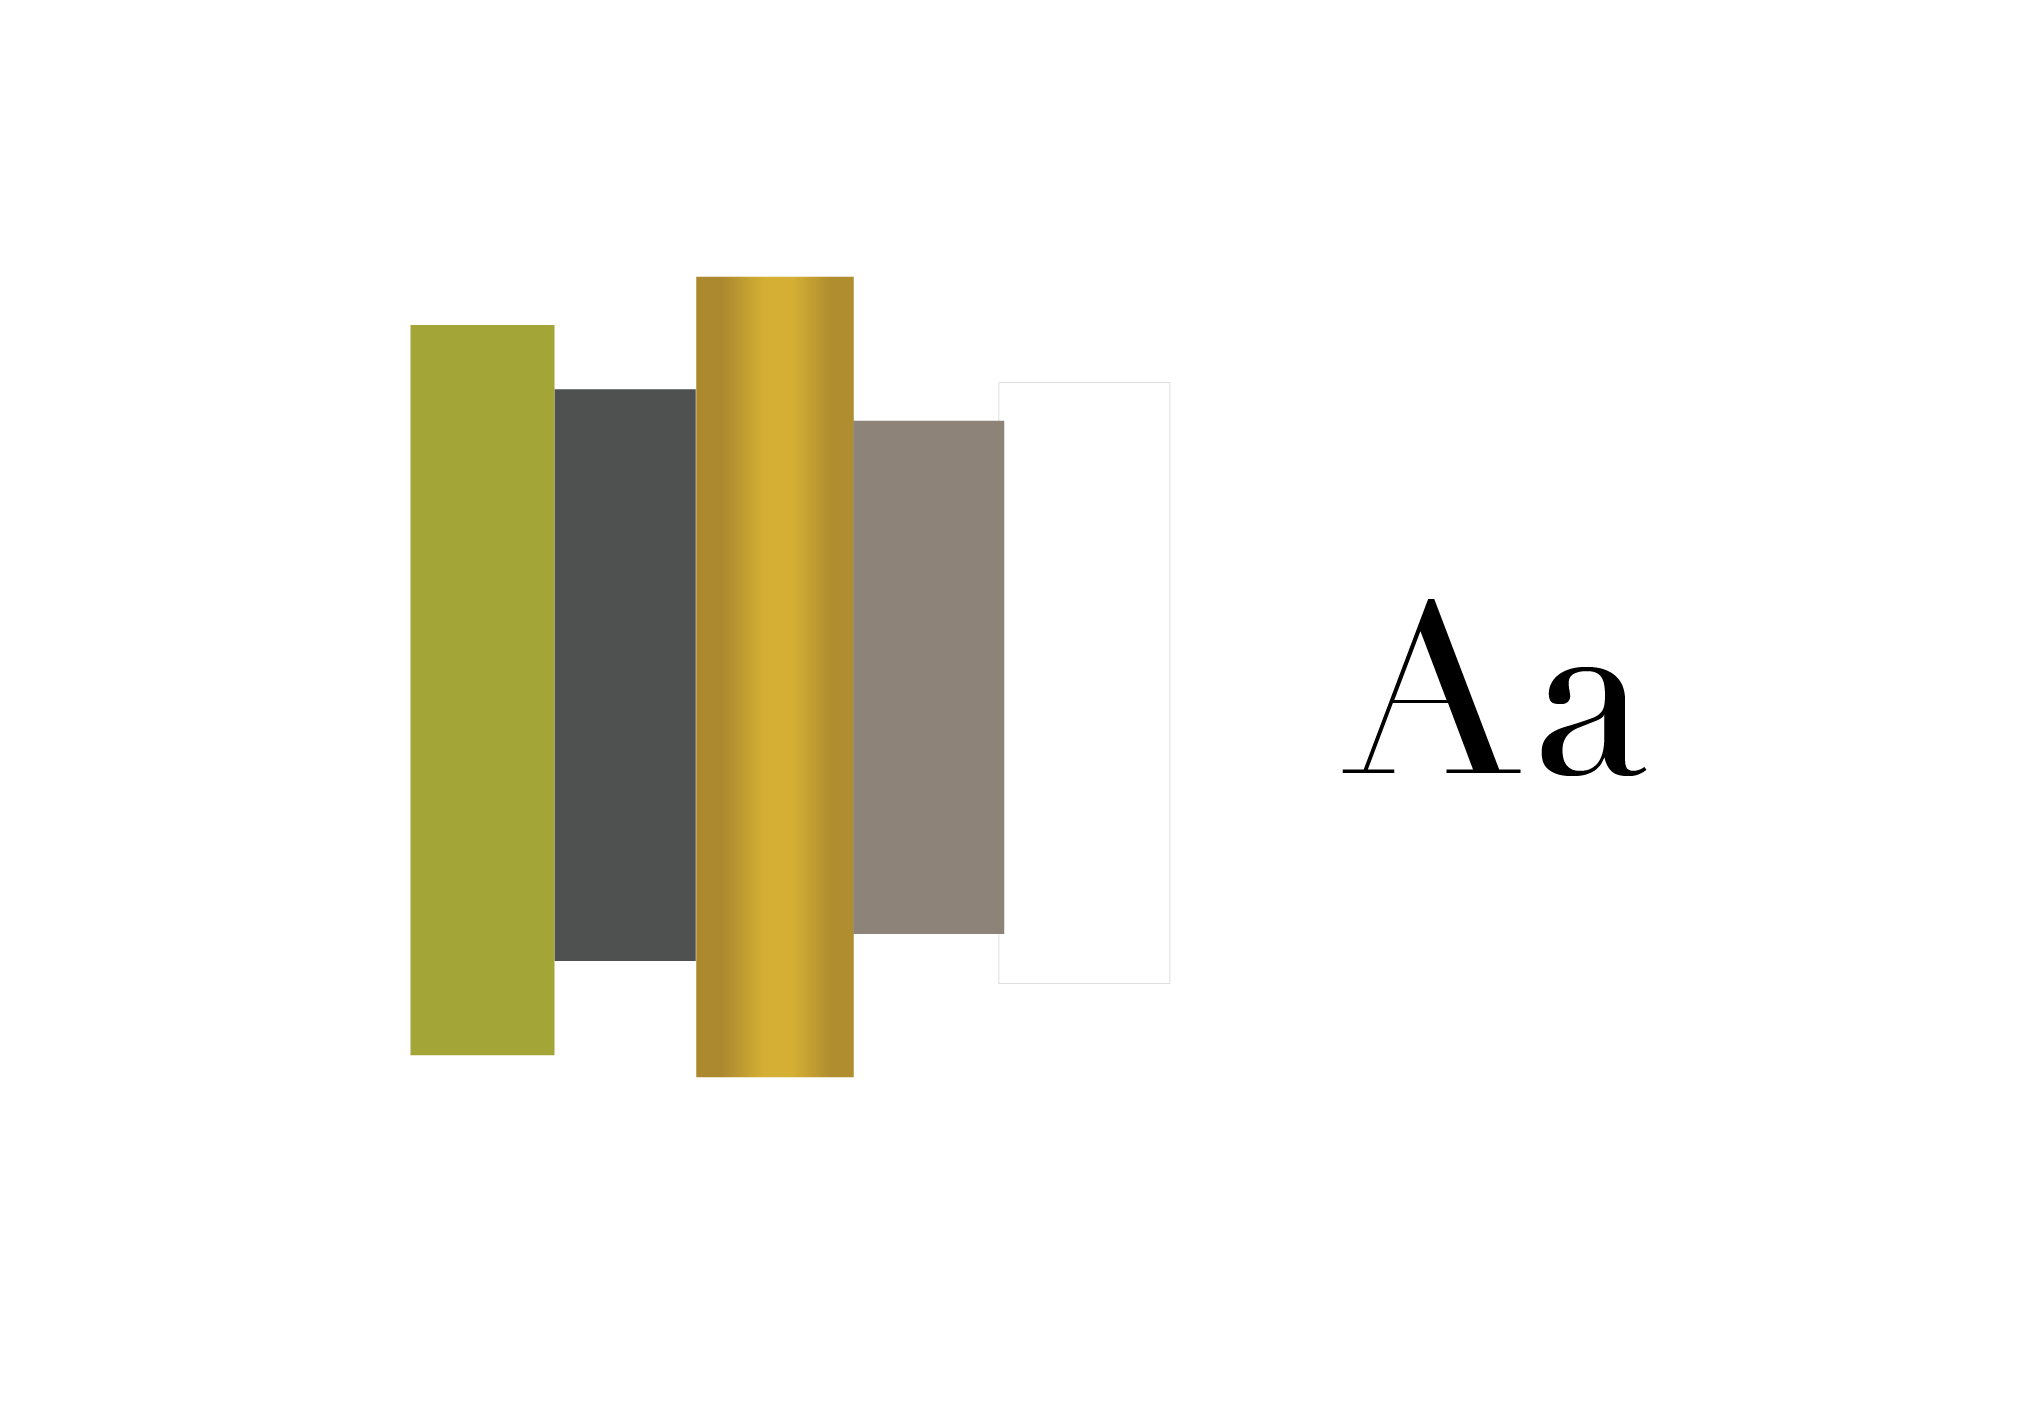 CG_colorpalette.png